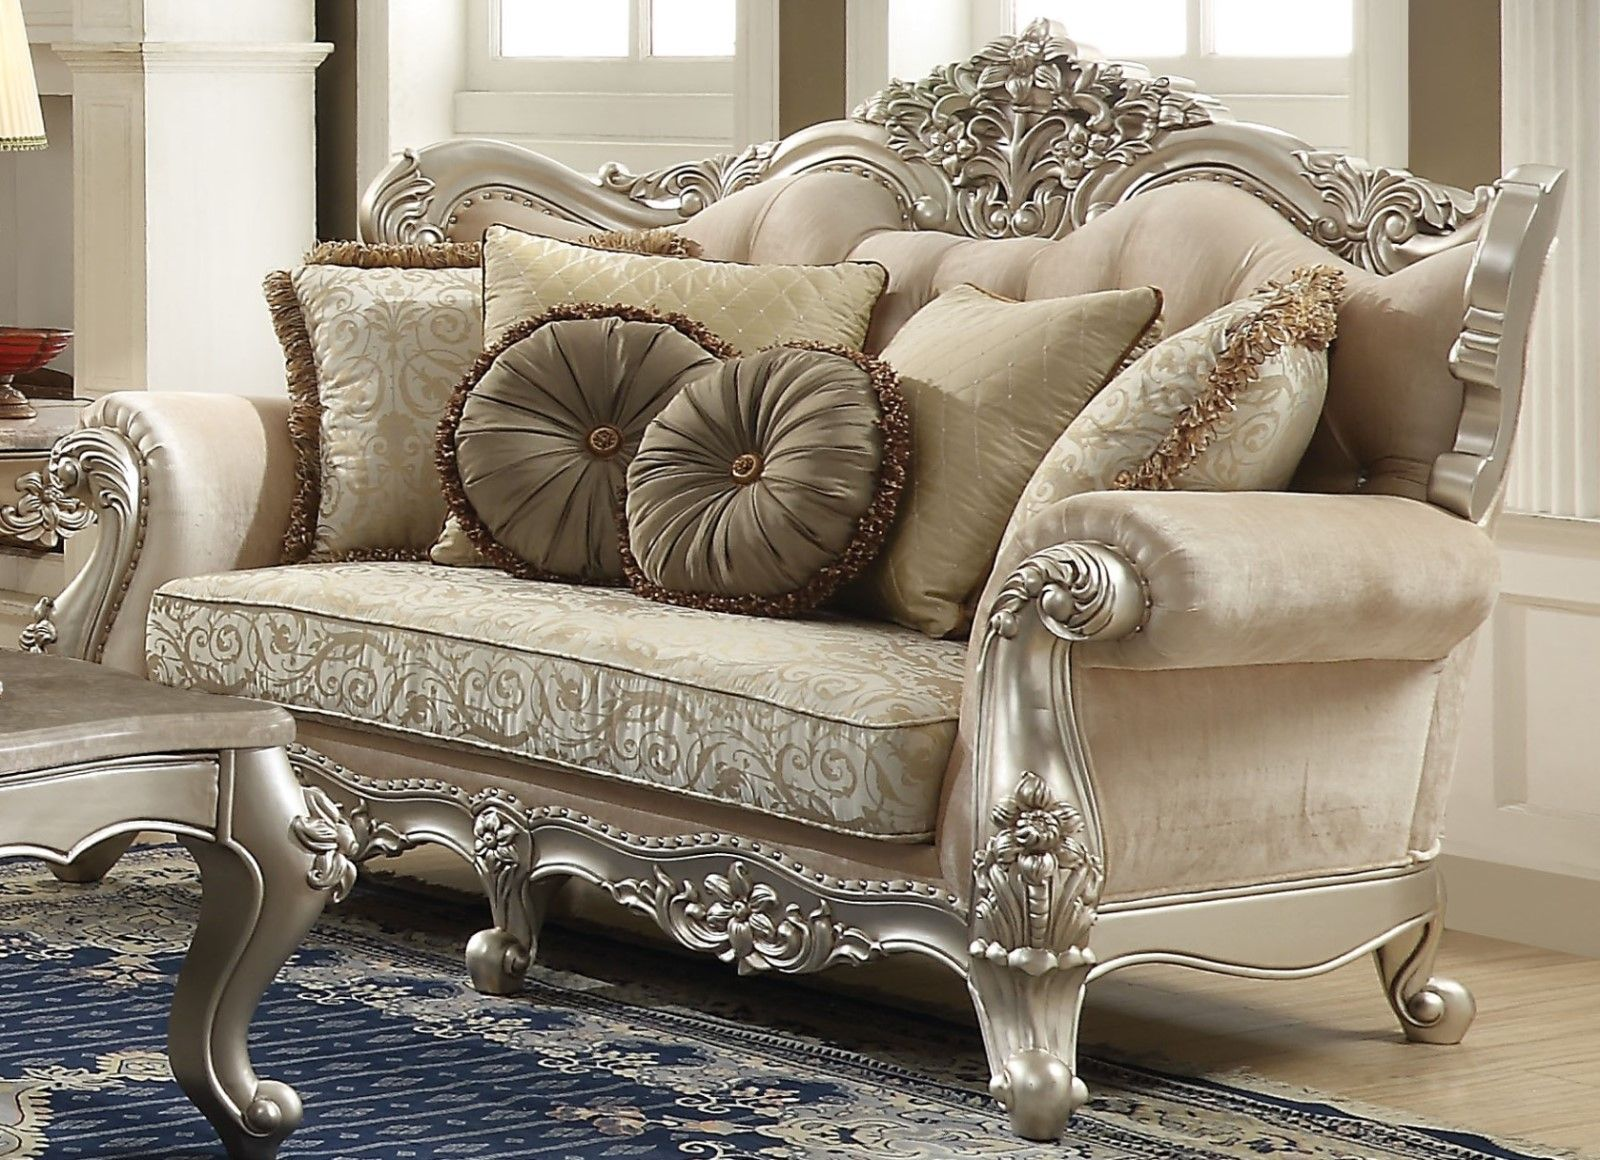 Lourdes Classic Crystal Tufted Beige Fabric Wingback Sofa ...